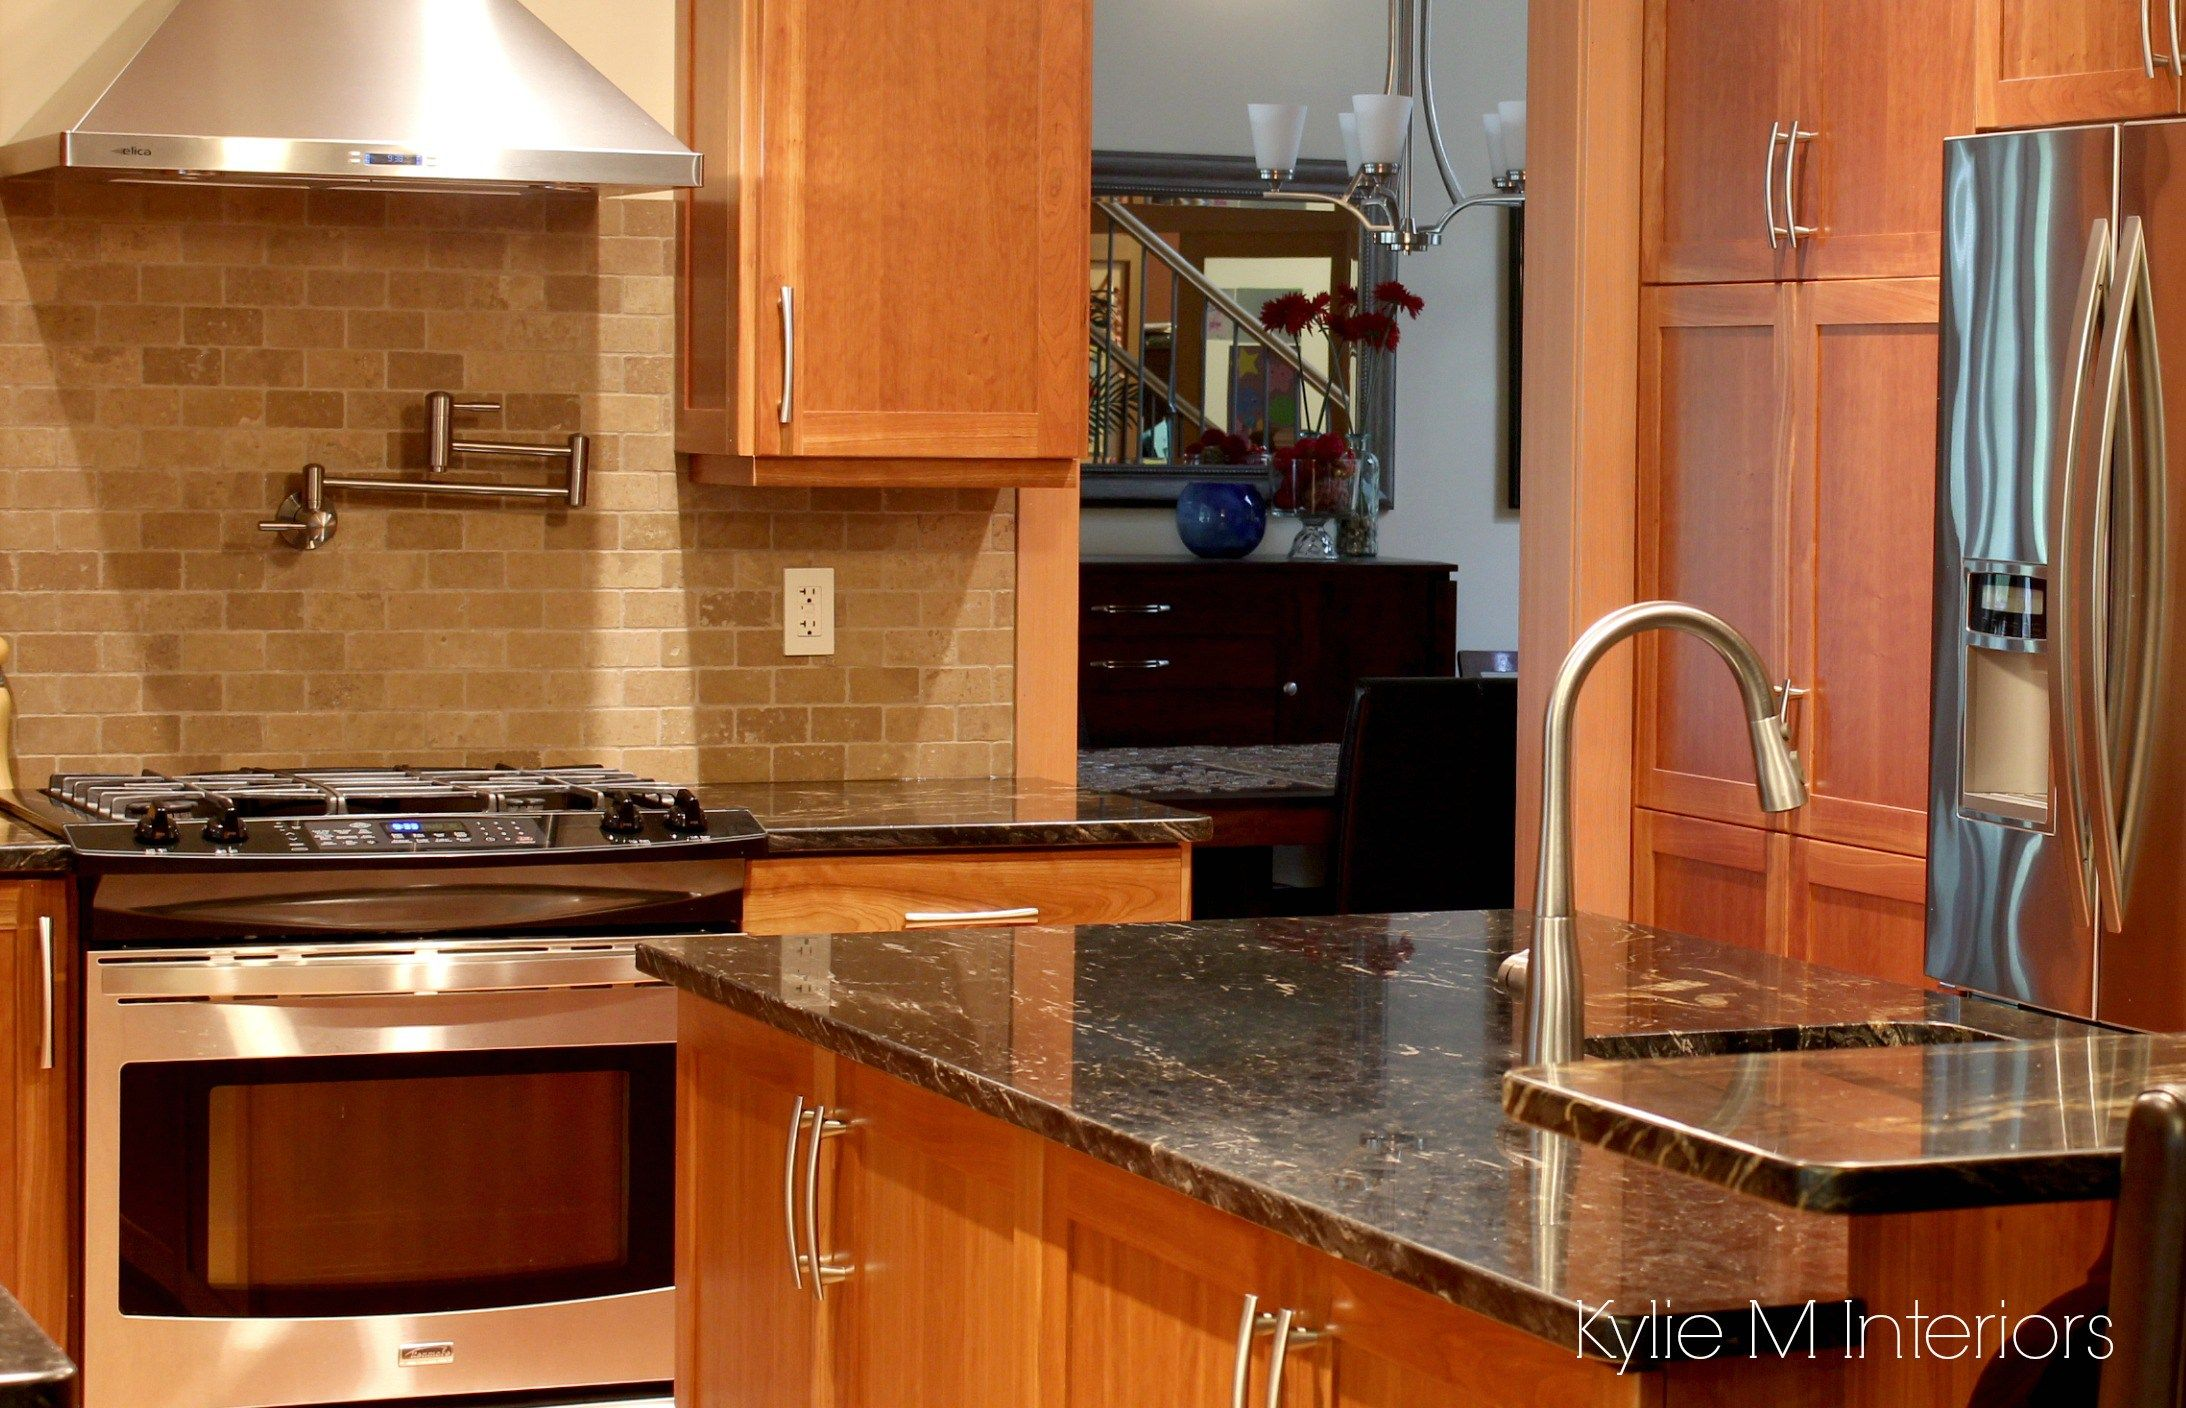 Natural Cherry Cabinets In Kitchen With Black Granite Prep Sink Pot Filler An Cherry Cabinets Kitchen Trendy Kitchen Backsplash Replacing Kitchen Countertops